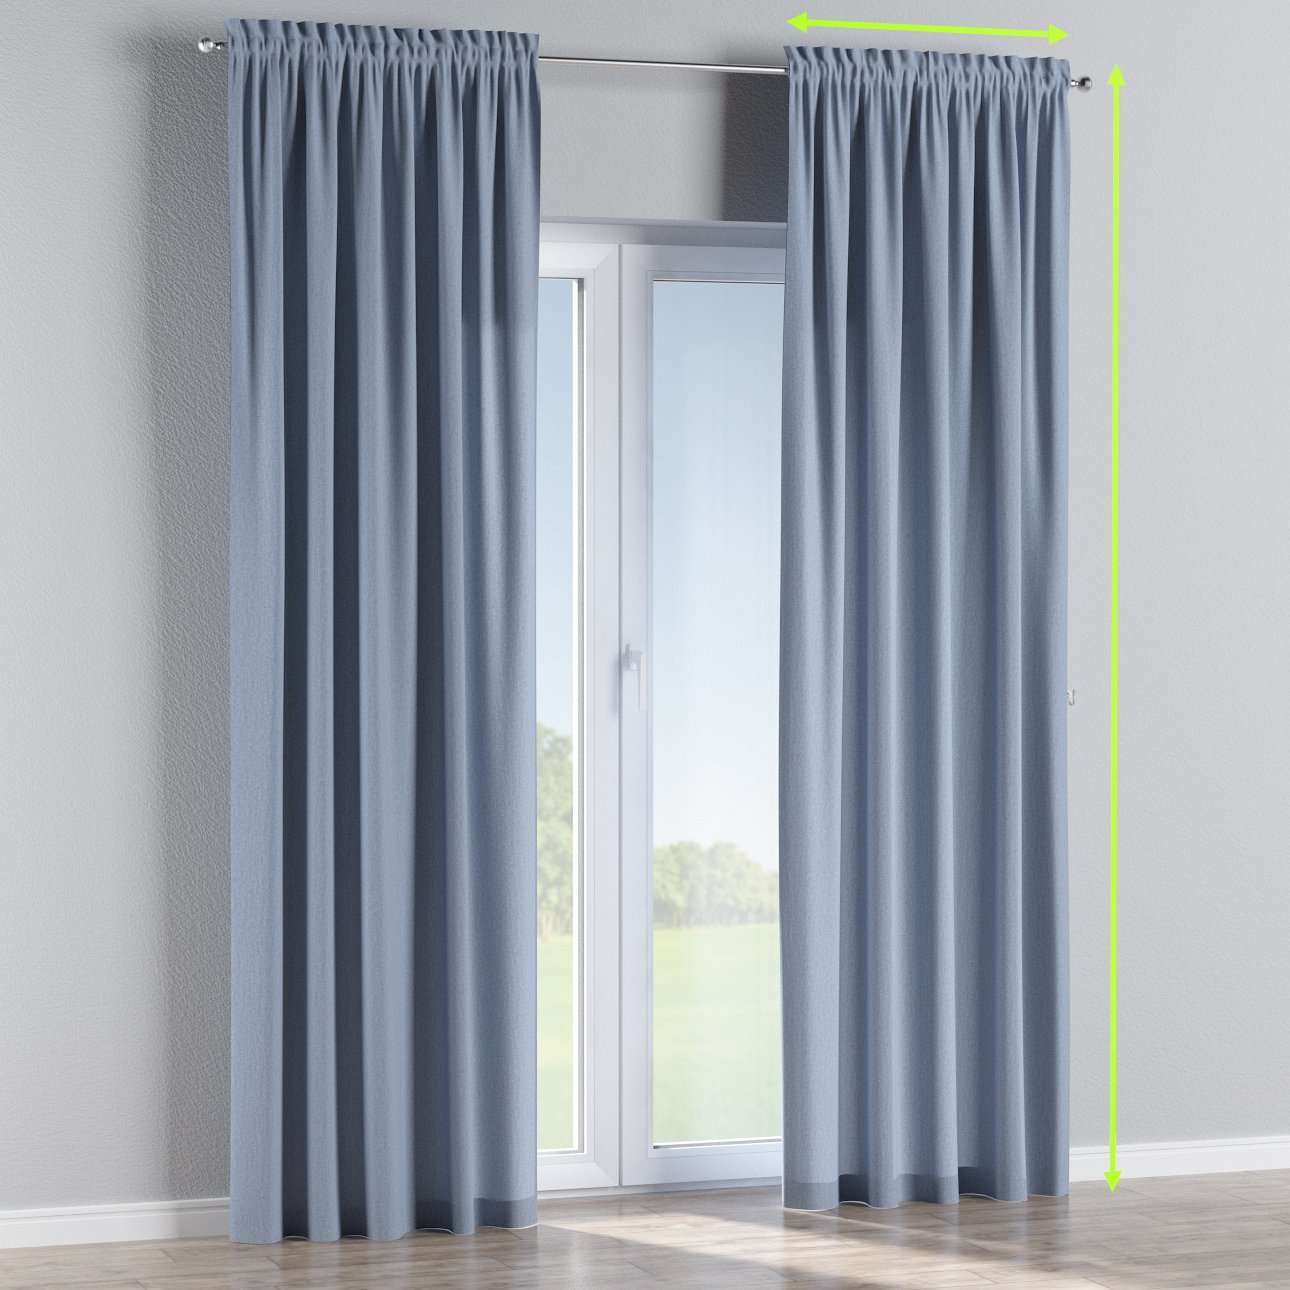 Slot and frill lined curtains in collection Chenille, fabric: 702-13